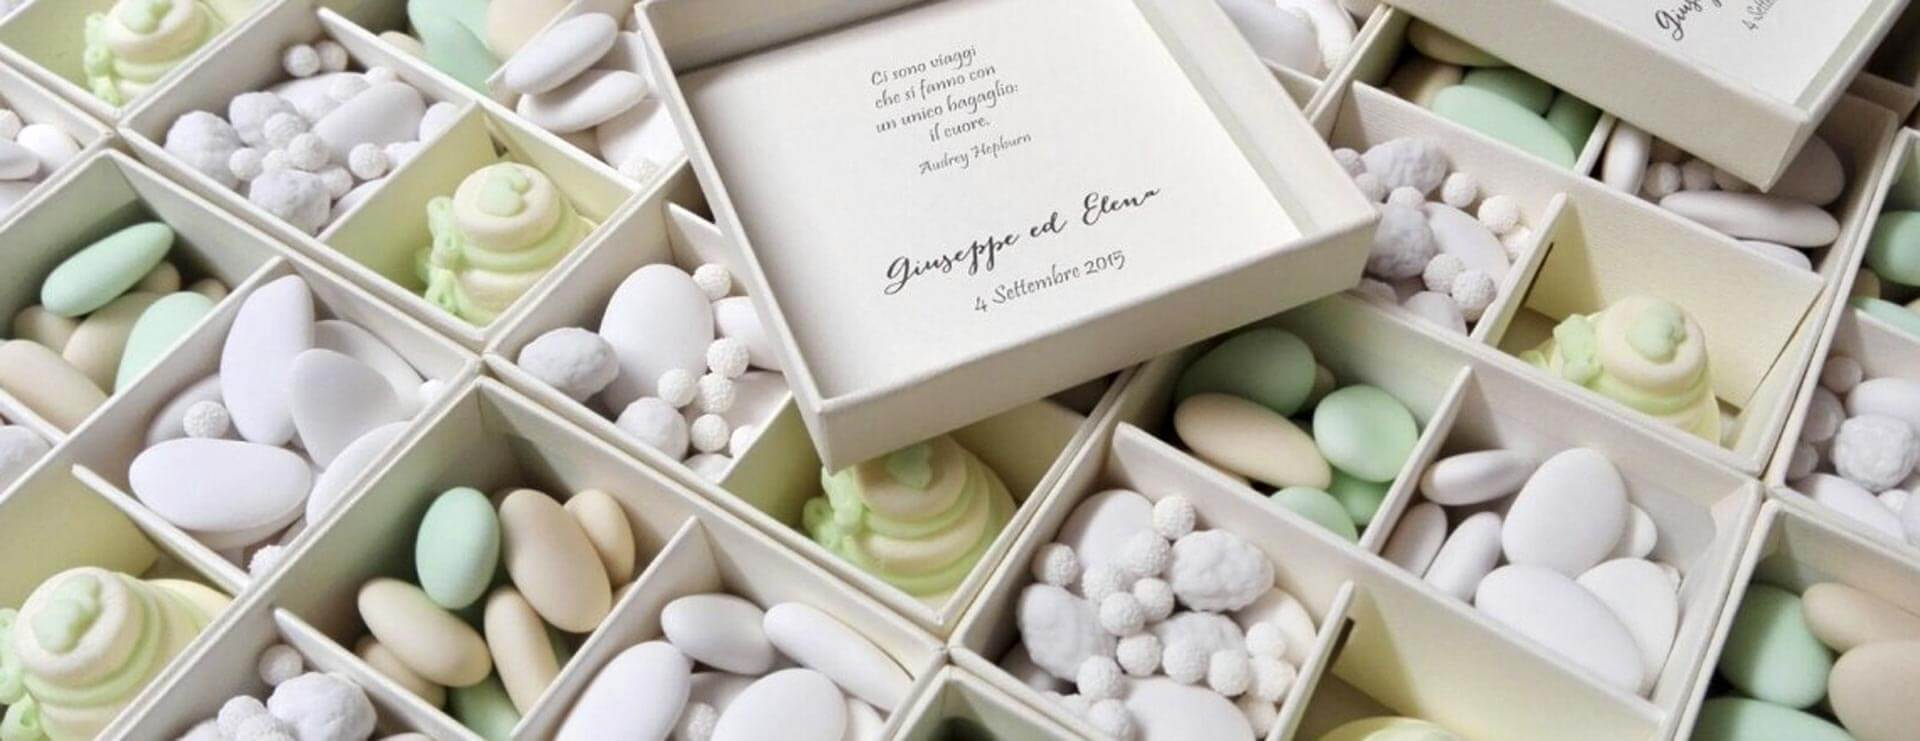 Italian Wedding Favors Ideas Creative Italian Weddings Exclusive